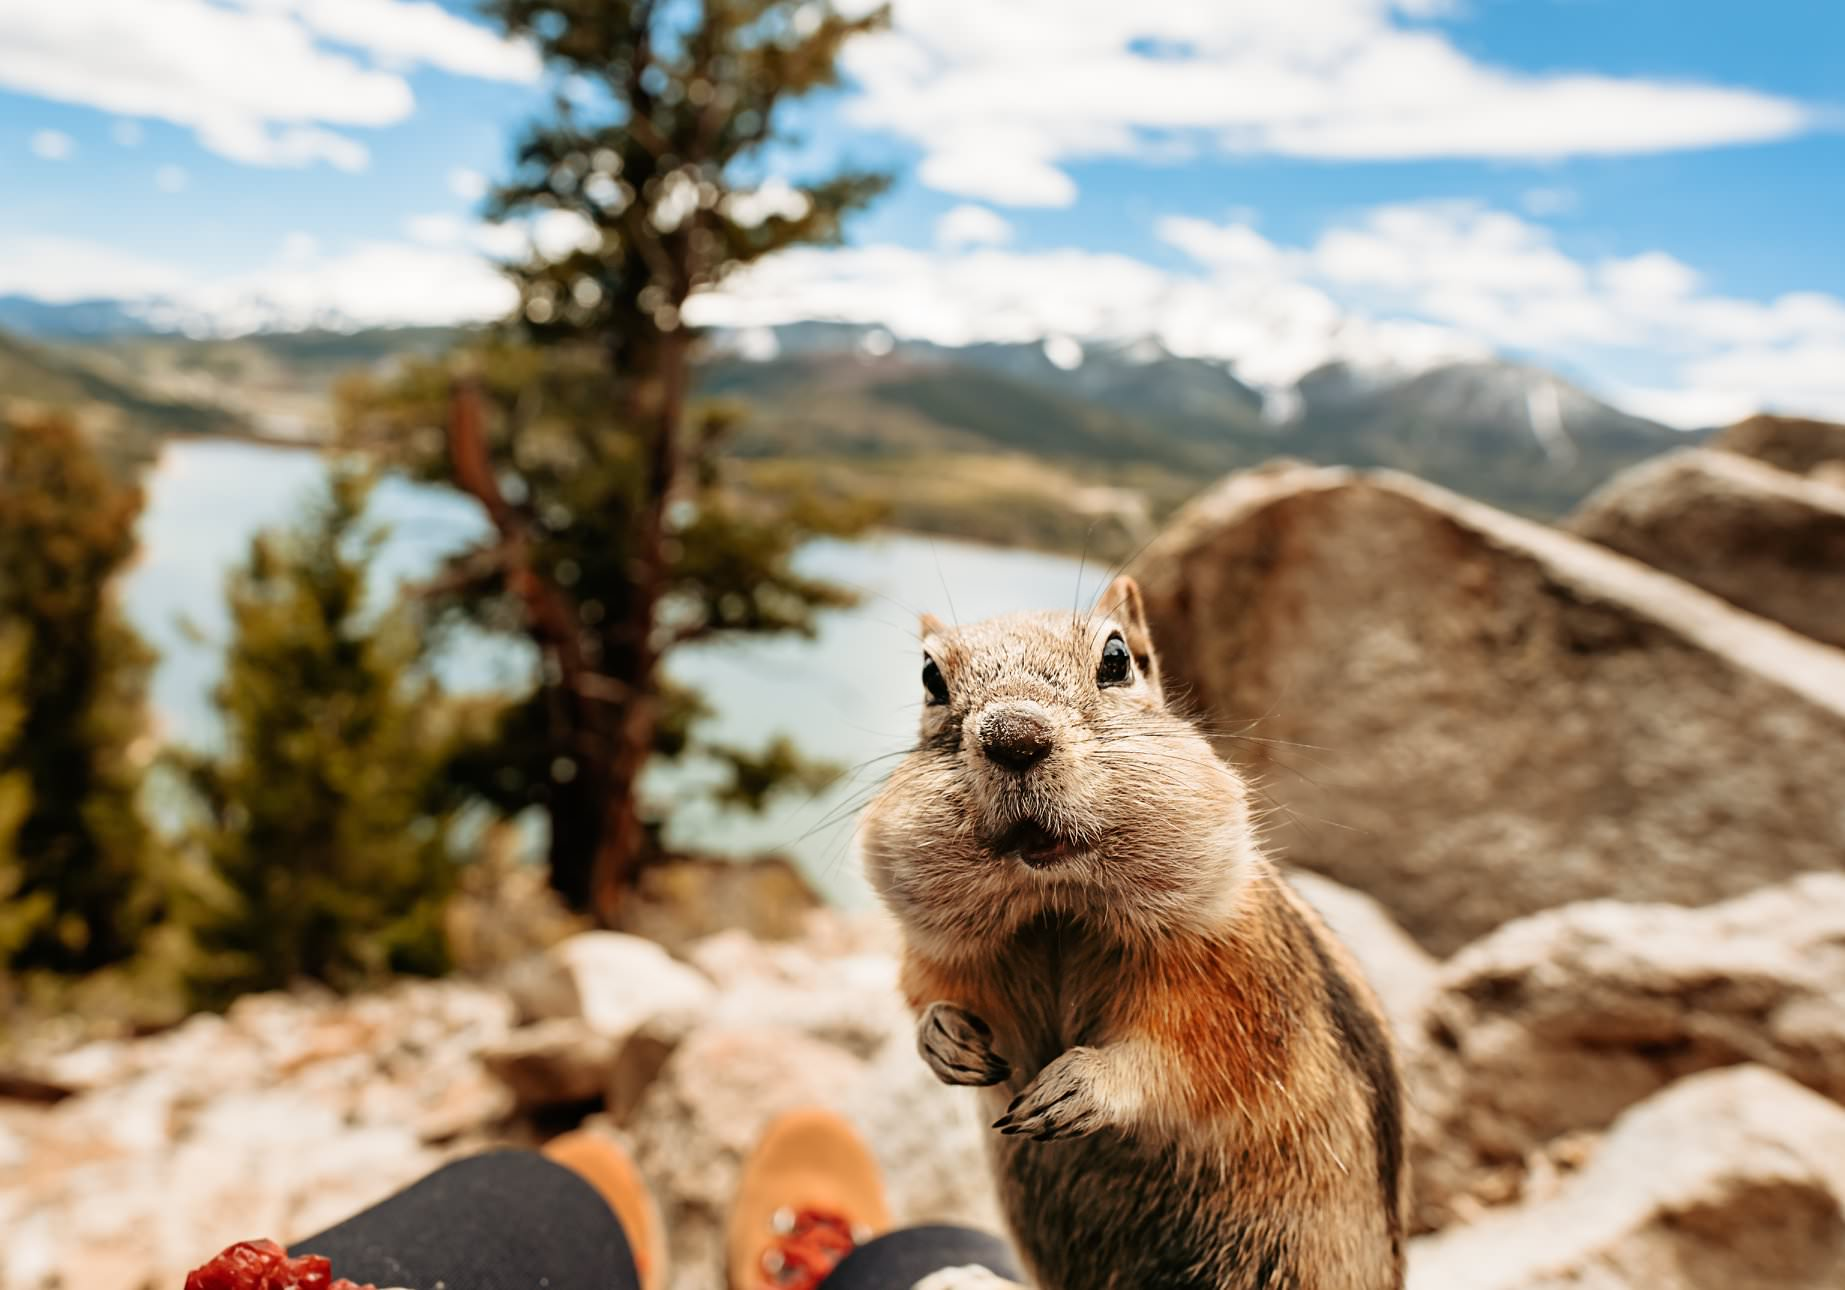 a chipmunk eats a fruit and looks surprised